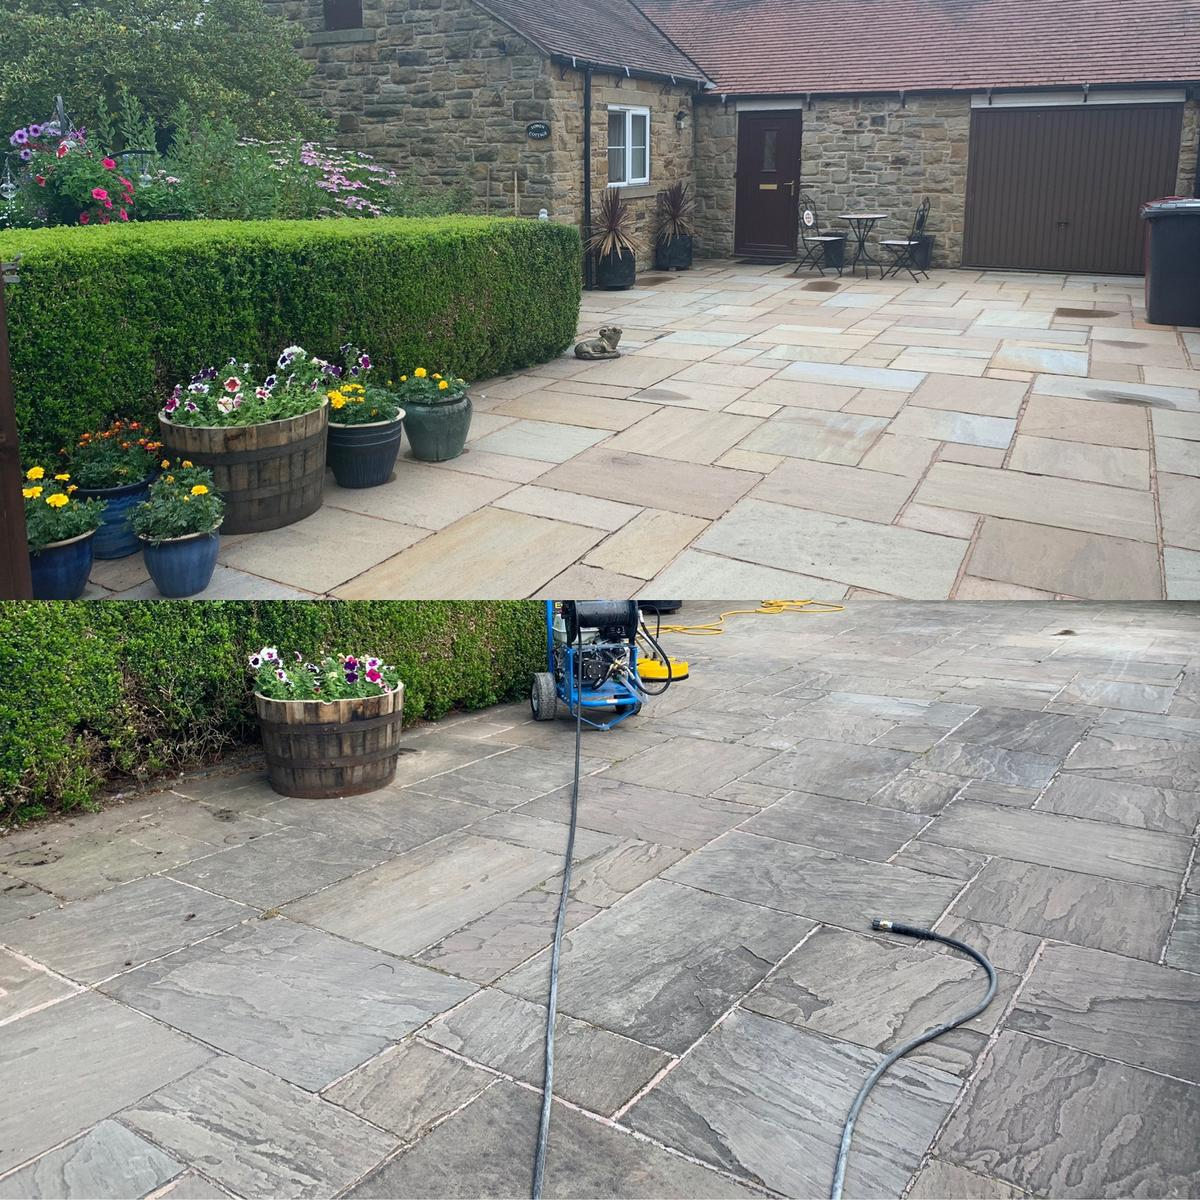 Driveway Cleaning In Chesterfield In S44 North East Derbyshire Fur